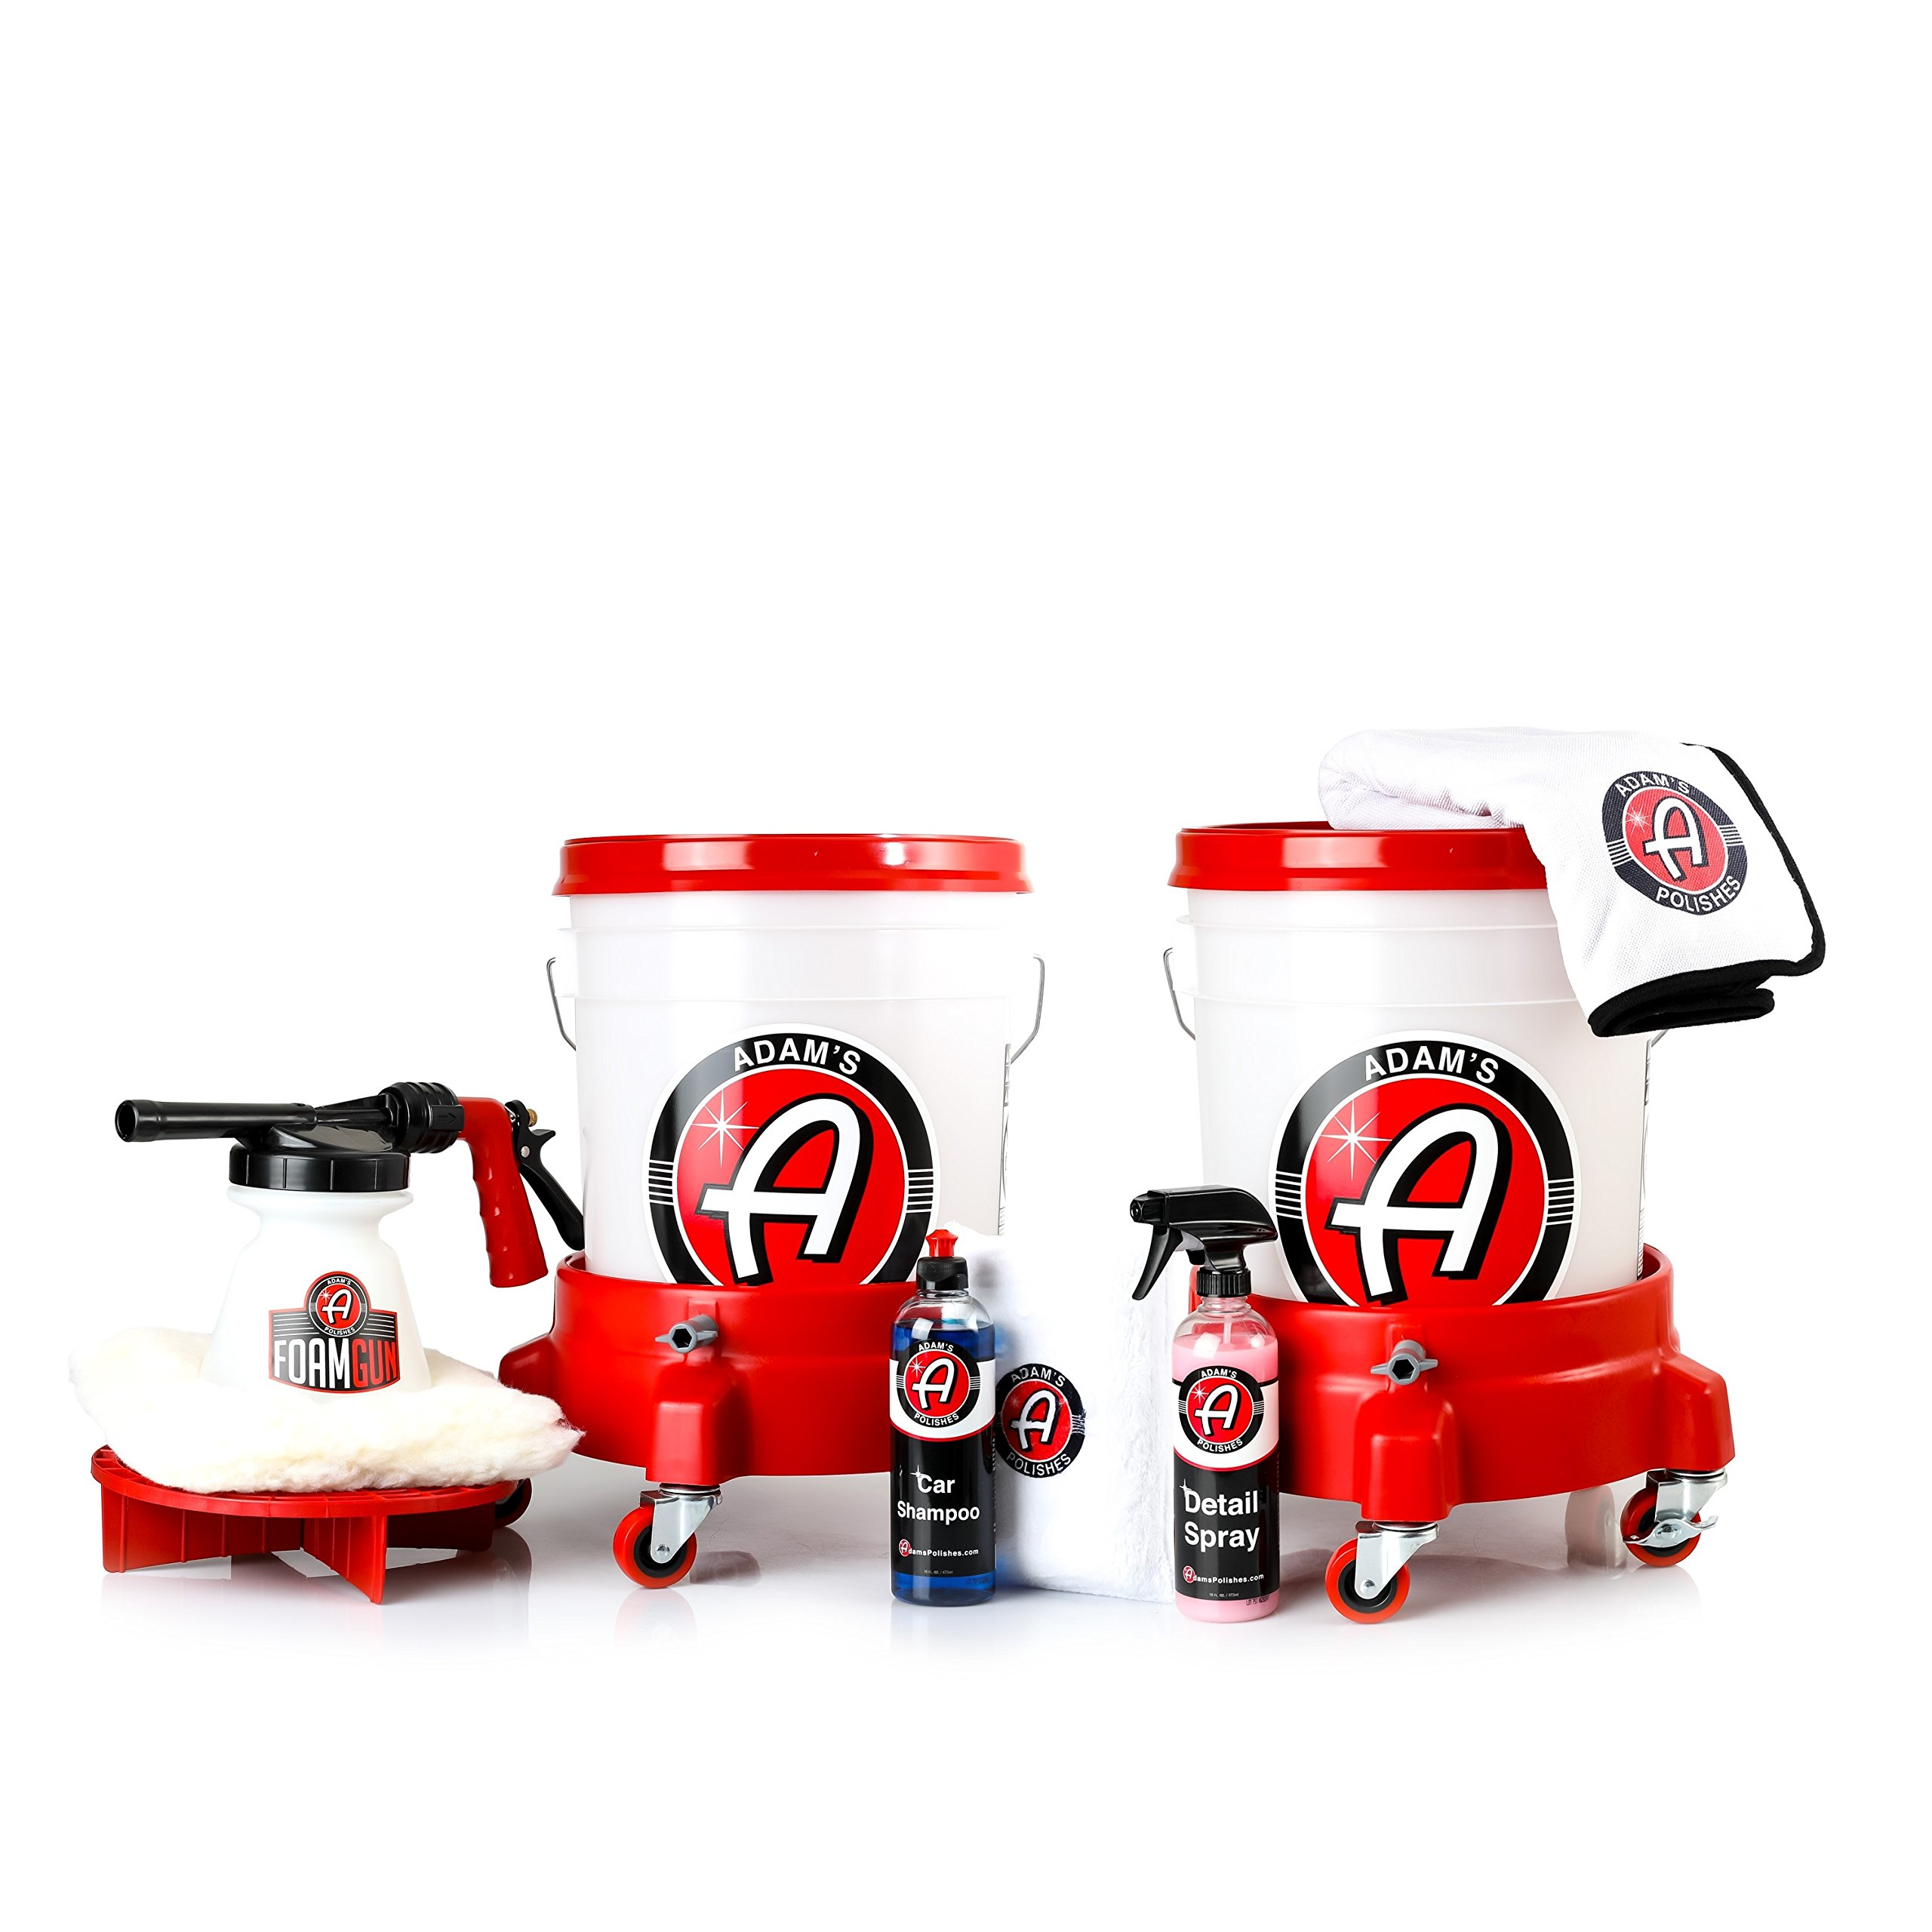 Adam's Two Bucket & Bucket Caddy Wash Kit - Easily Maneuver Your Buckets When You Wash - Safely and Effectively Wash and Dry Your Vehicles